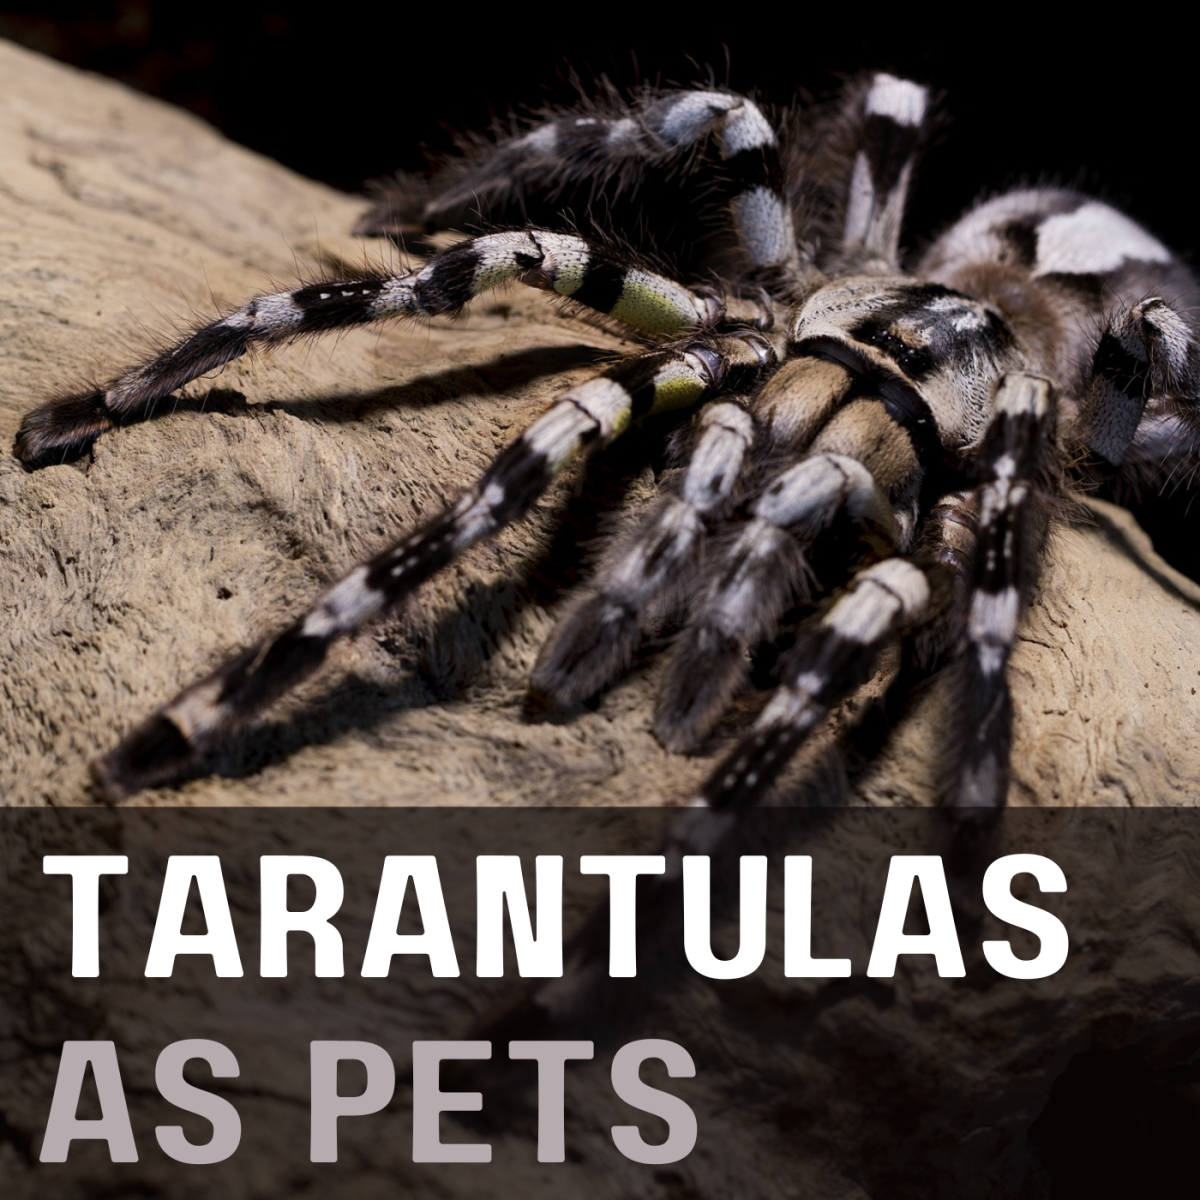 Learn about keeping tarantulas as pets, including why they're not true spiders.